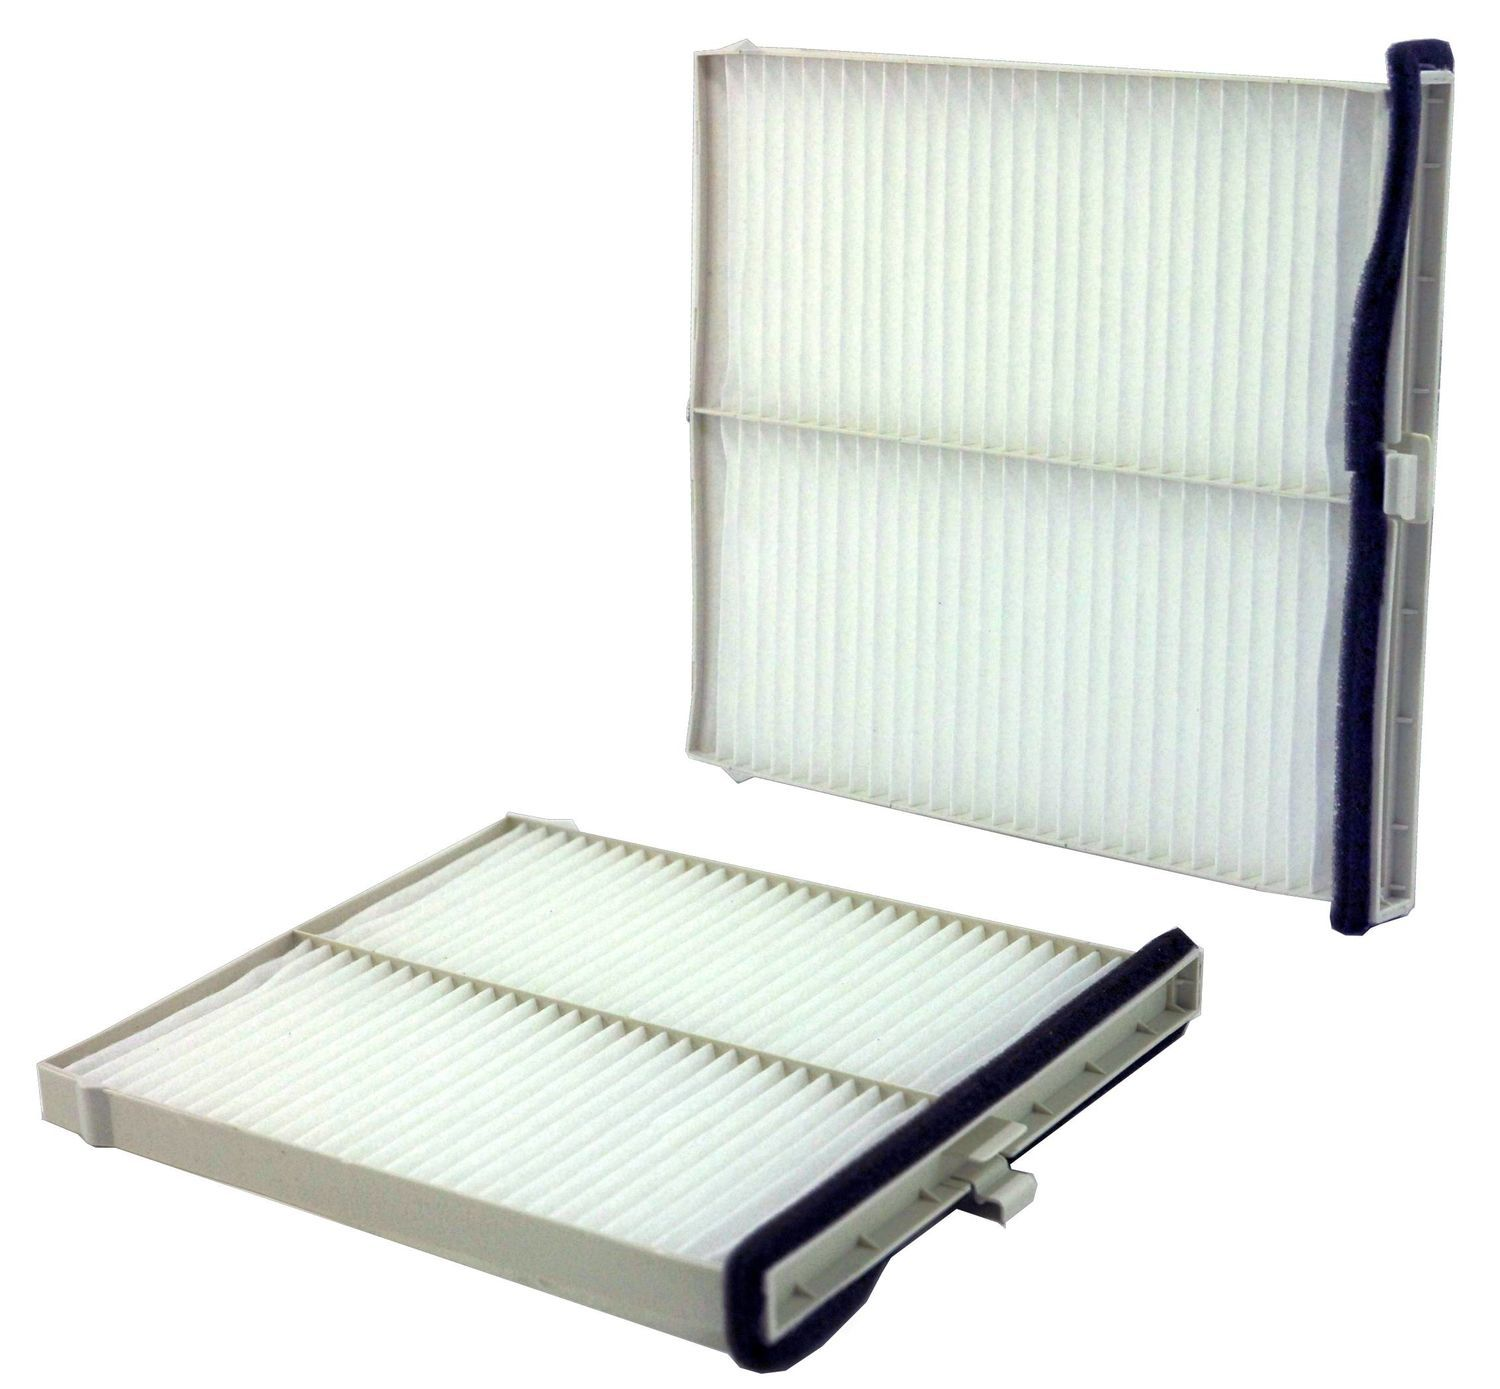 cabin air filter fits 2013 2015 mazda cx 5 6 cx 5 3 wix ebay. Black Bedroom Furniture Sets. Home Design Ideas